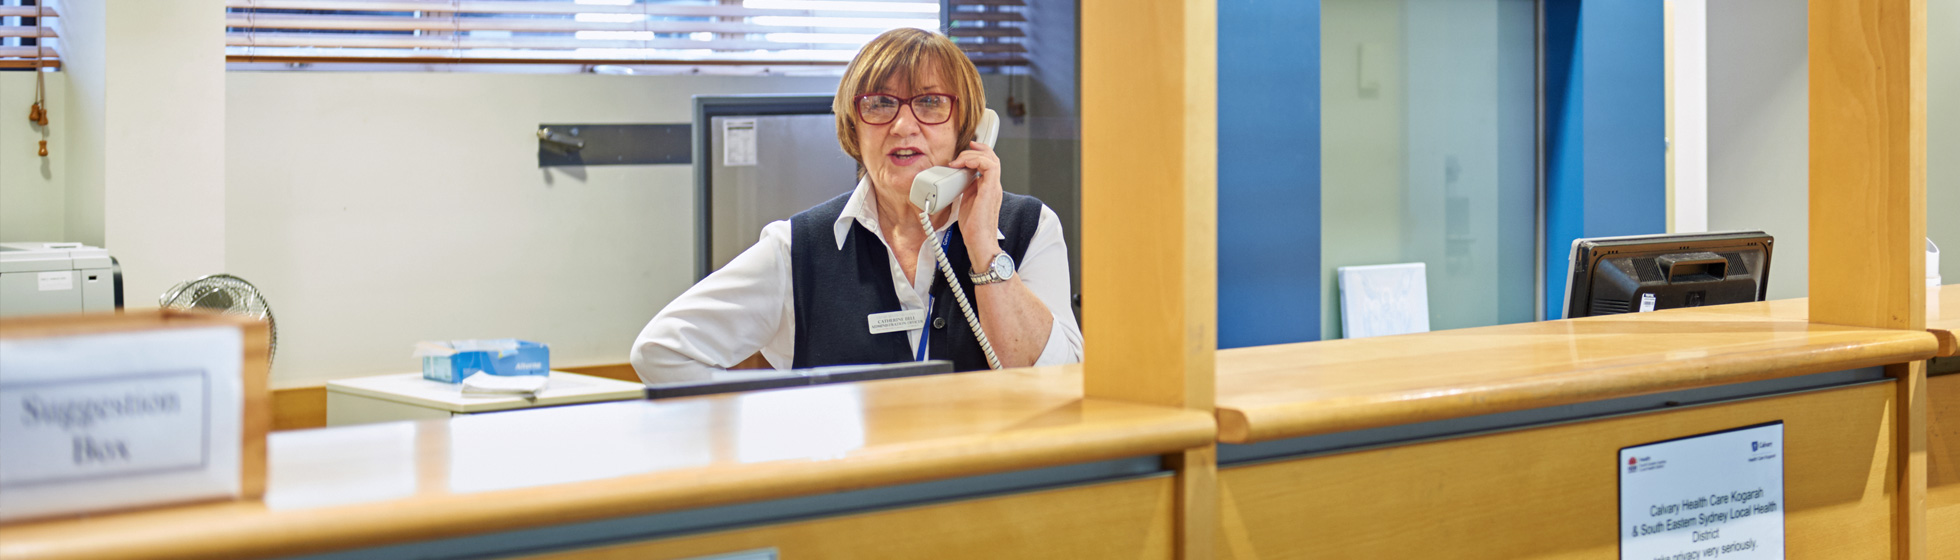 Receptionist speaking on the phone